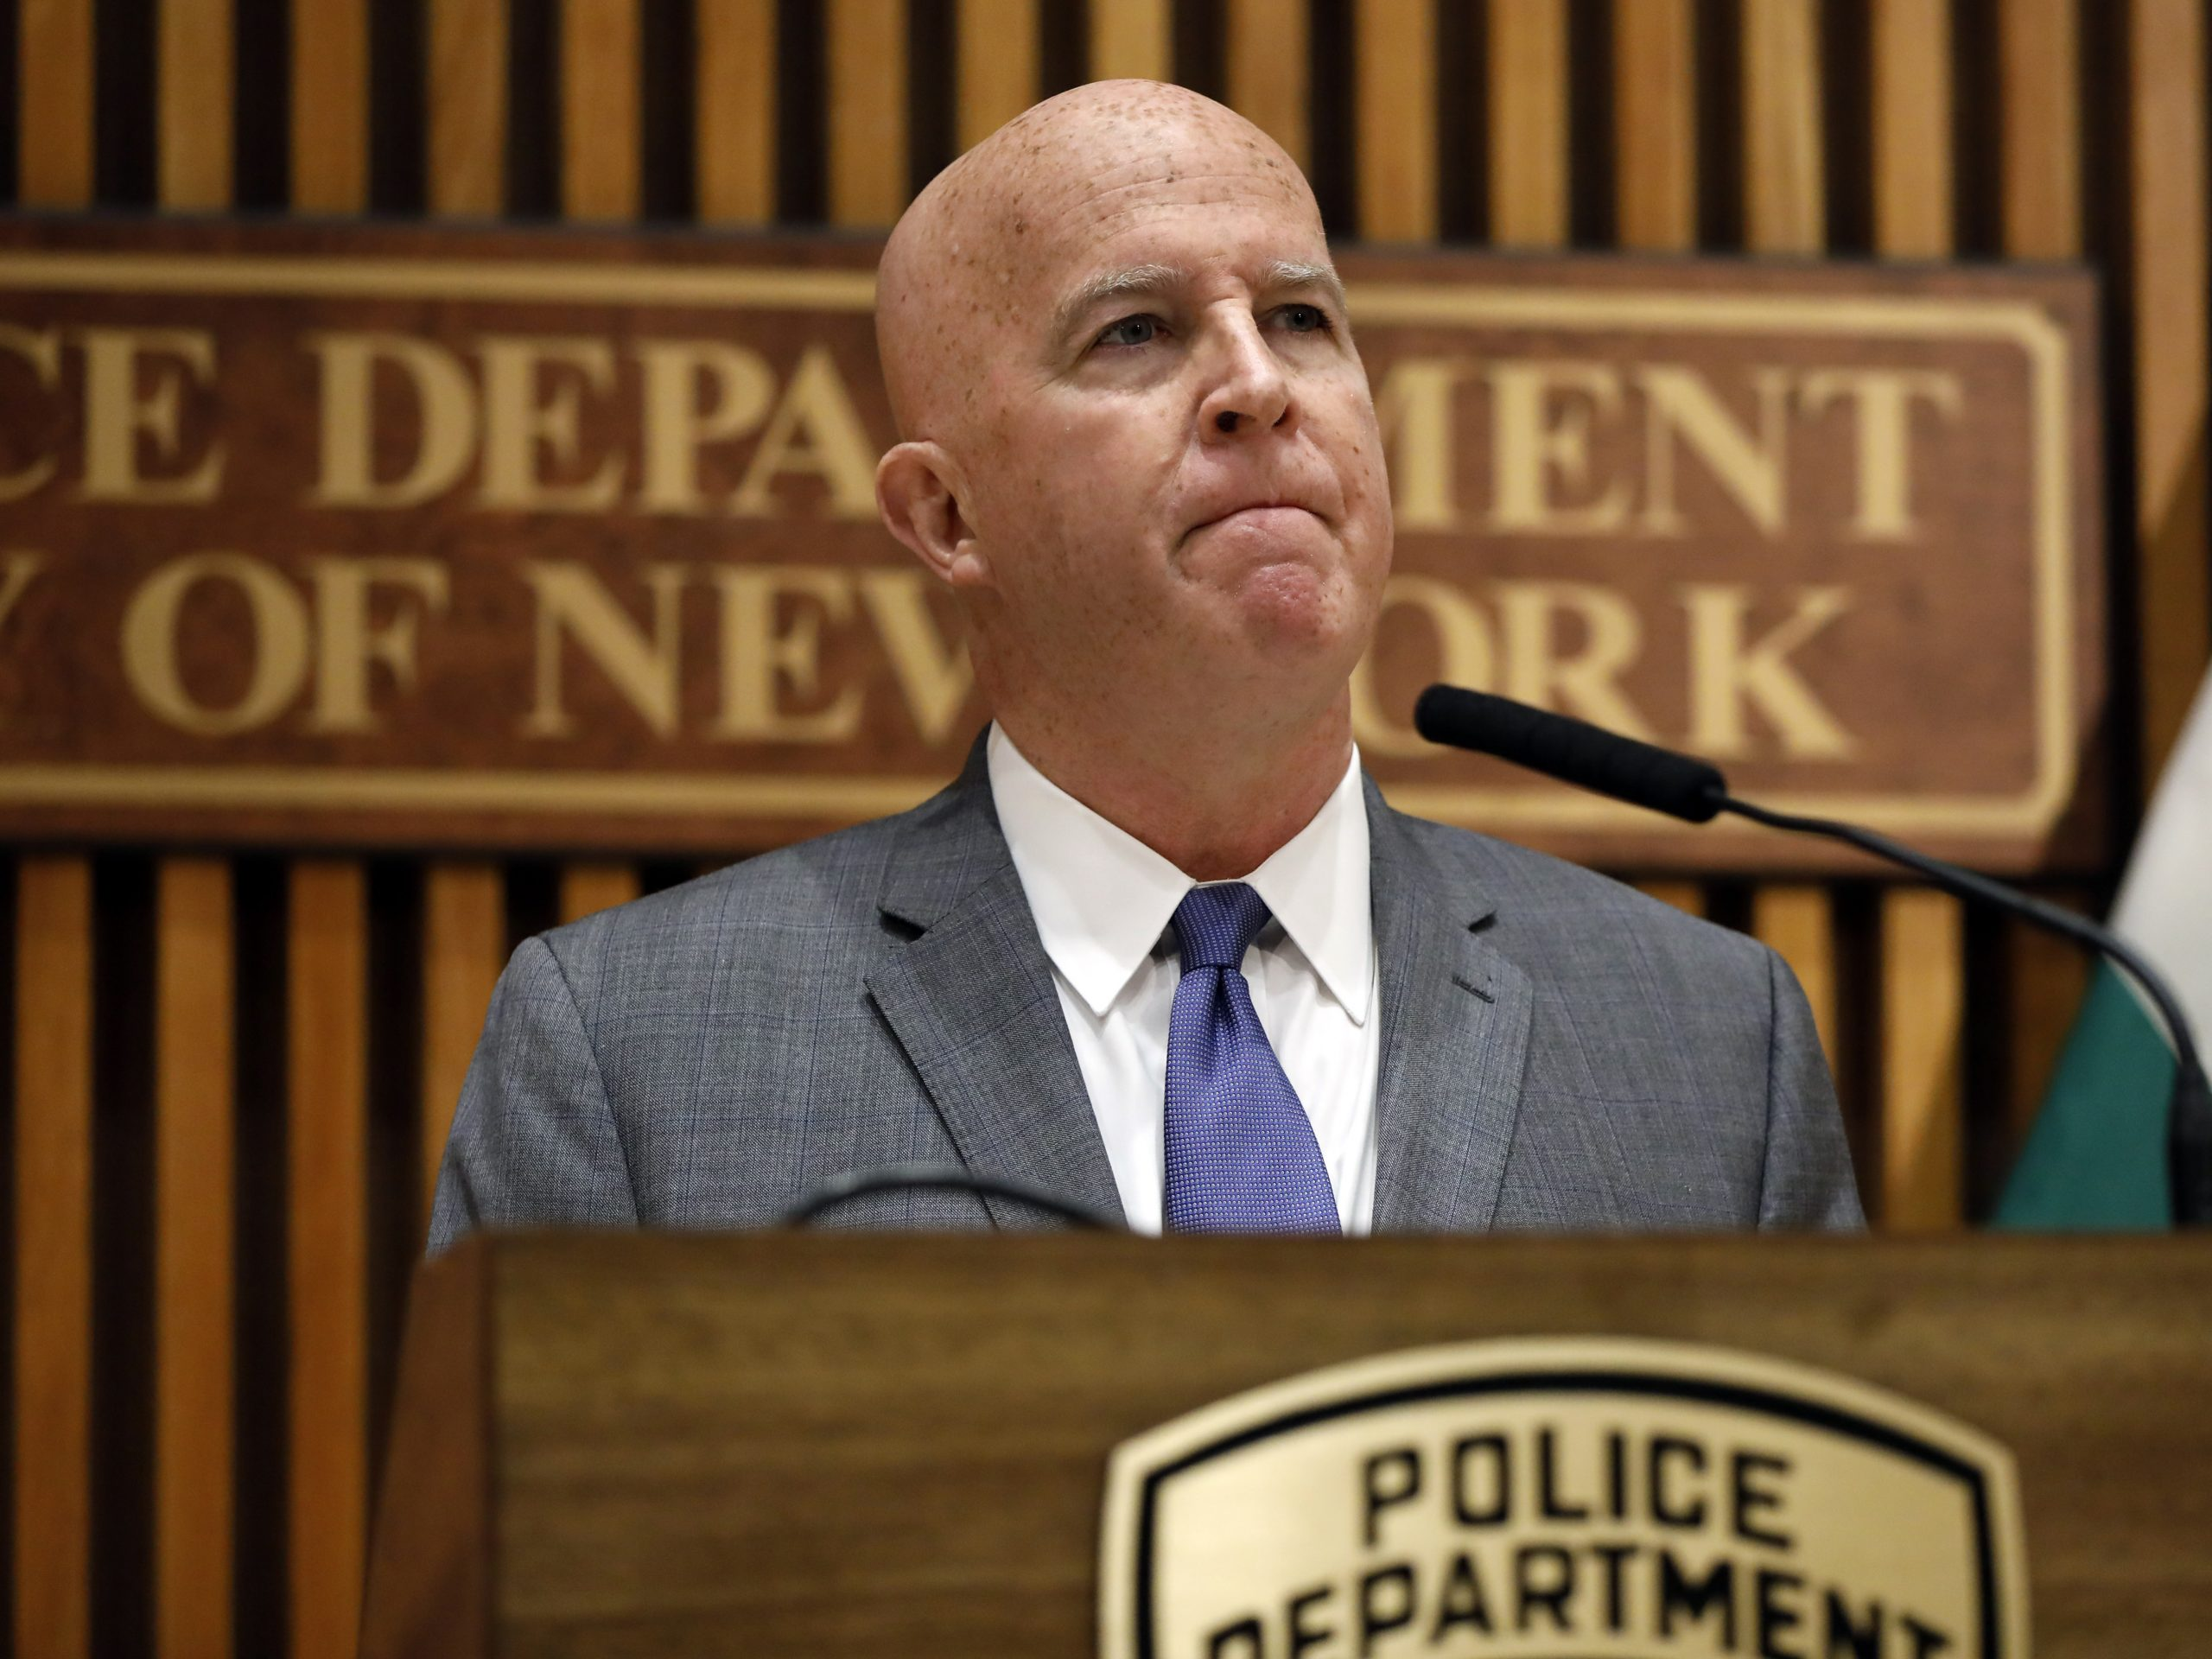 Police Commissioner James P. O'Neill announced Monday at New York City Police Department headquarters that the NYPD has fired Pantaleo for his role in Garner's death.